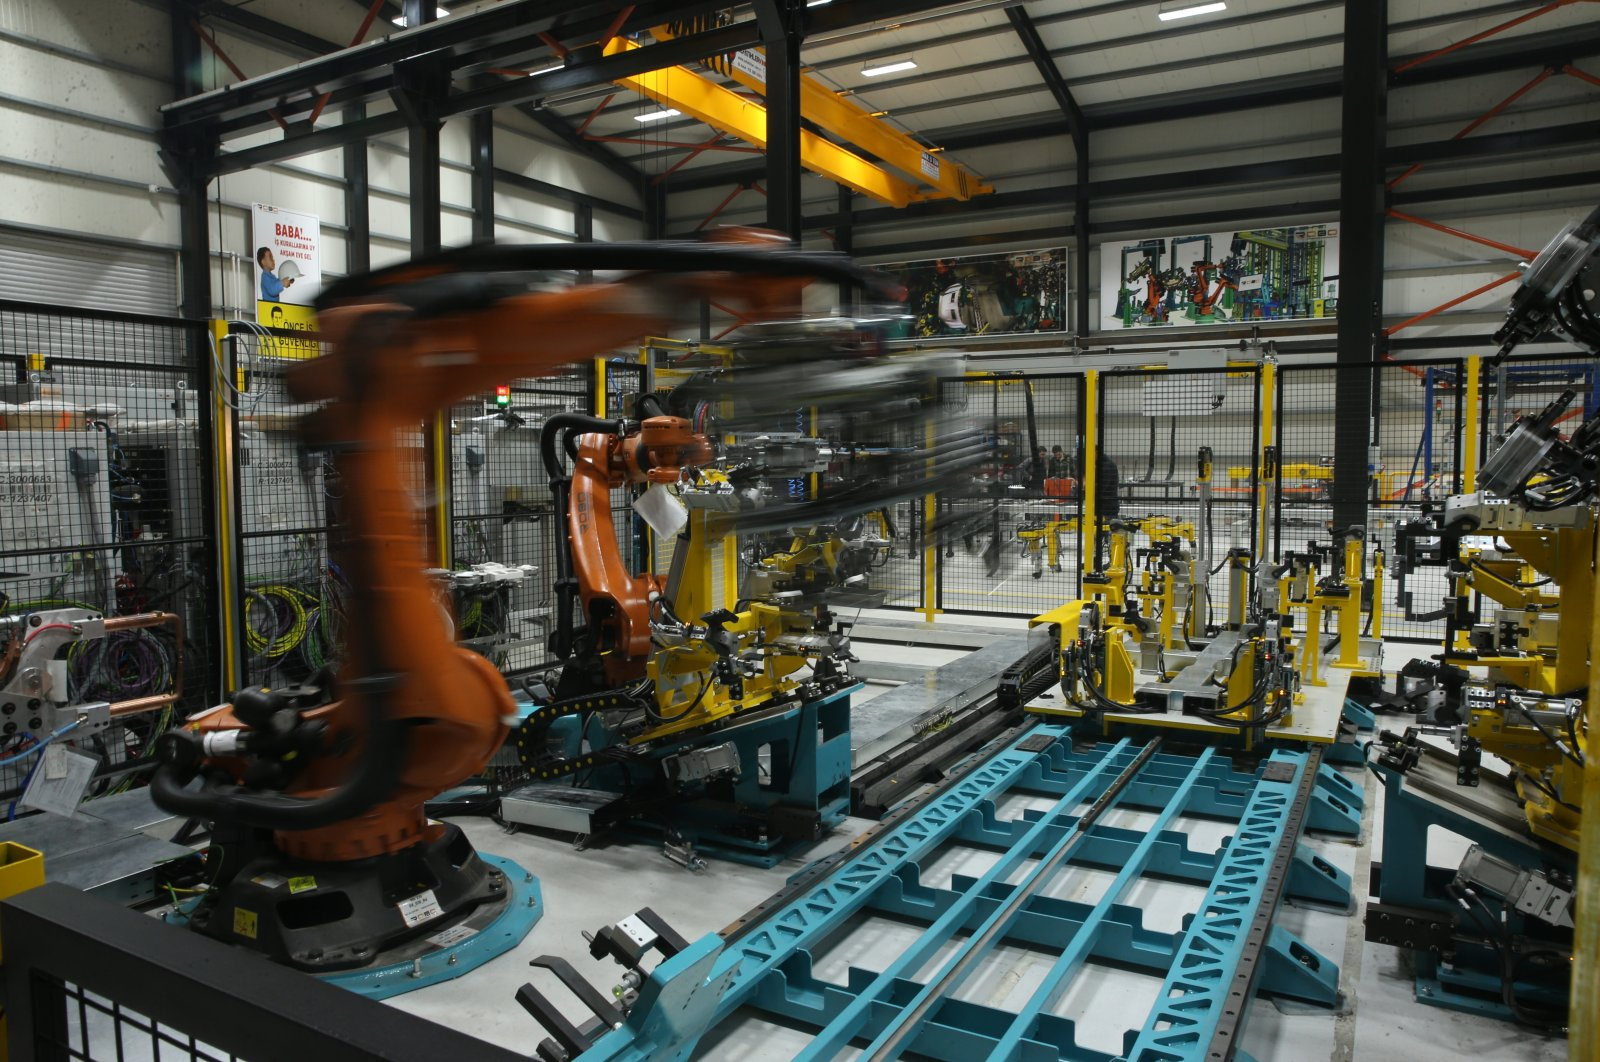 Robot systems are seen at a factory in Kocaeli province, northwestern Turkey, May 15, 2019. (AA Photo)